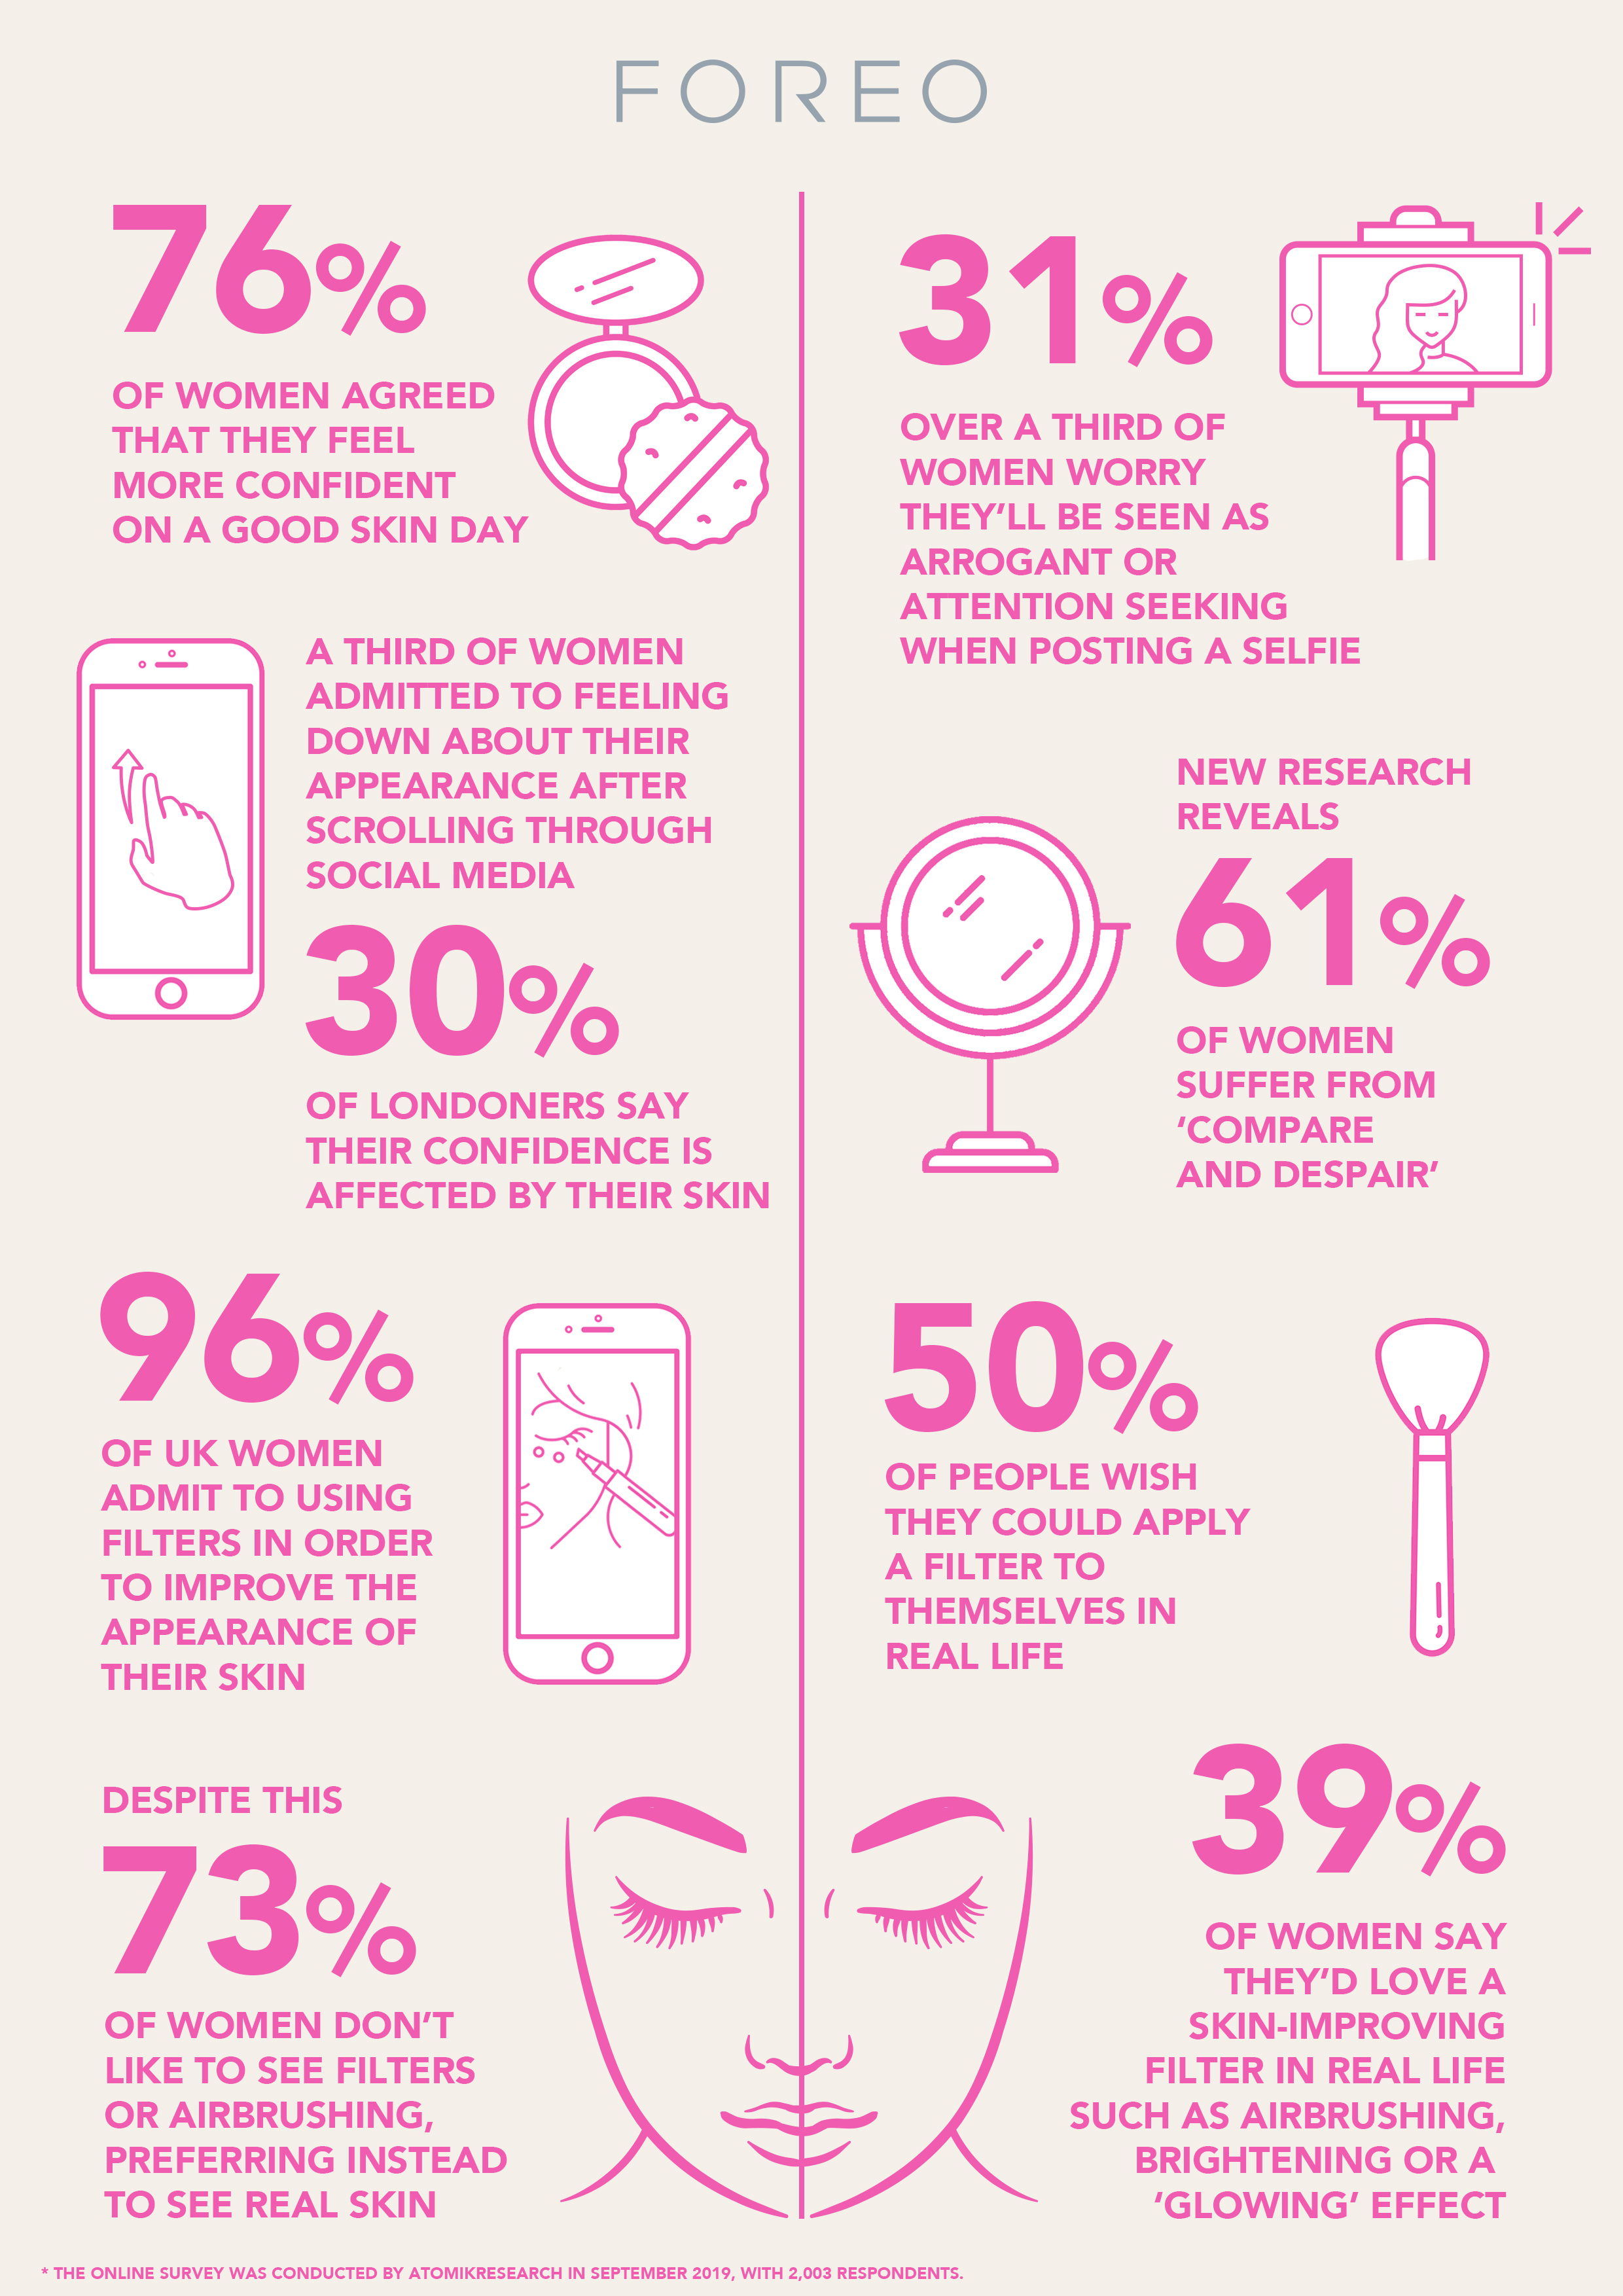 Infographic for FOREO findings